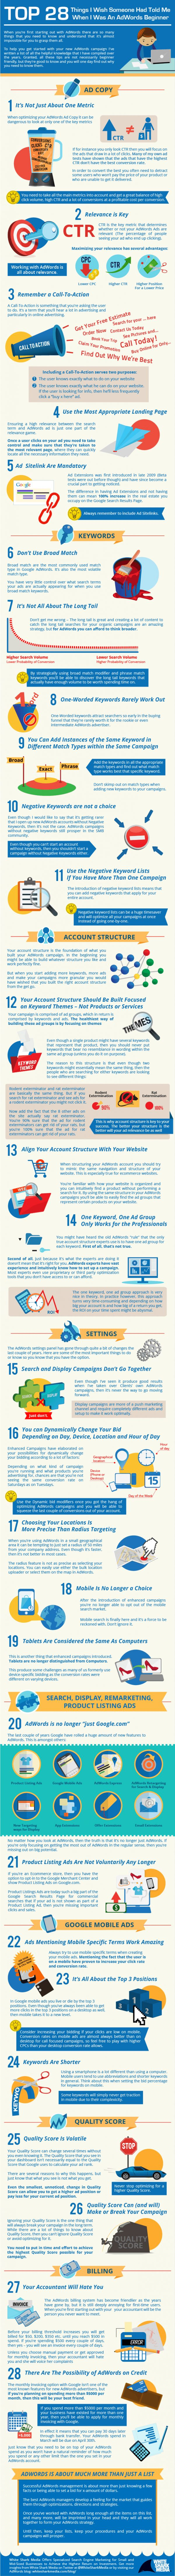 Advertising-Infographics-Google-AdWords-28-Things-to-Know-infographics-repinned-by-Piktochart Advertising Infographics : Google AdWords 28 Things to Know | #infographics repinned by Piktochart